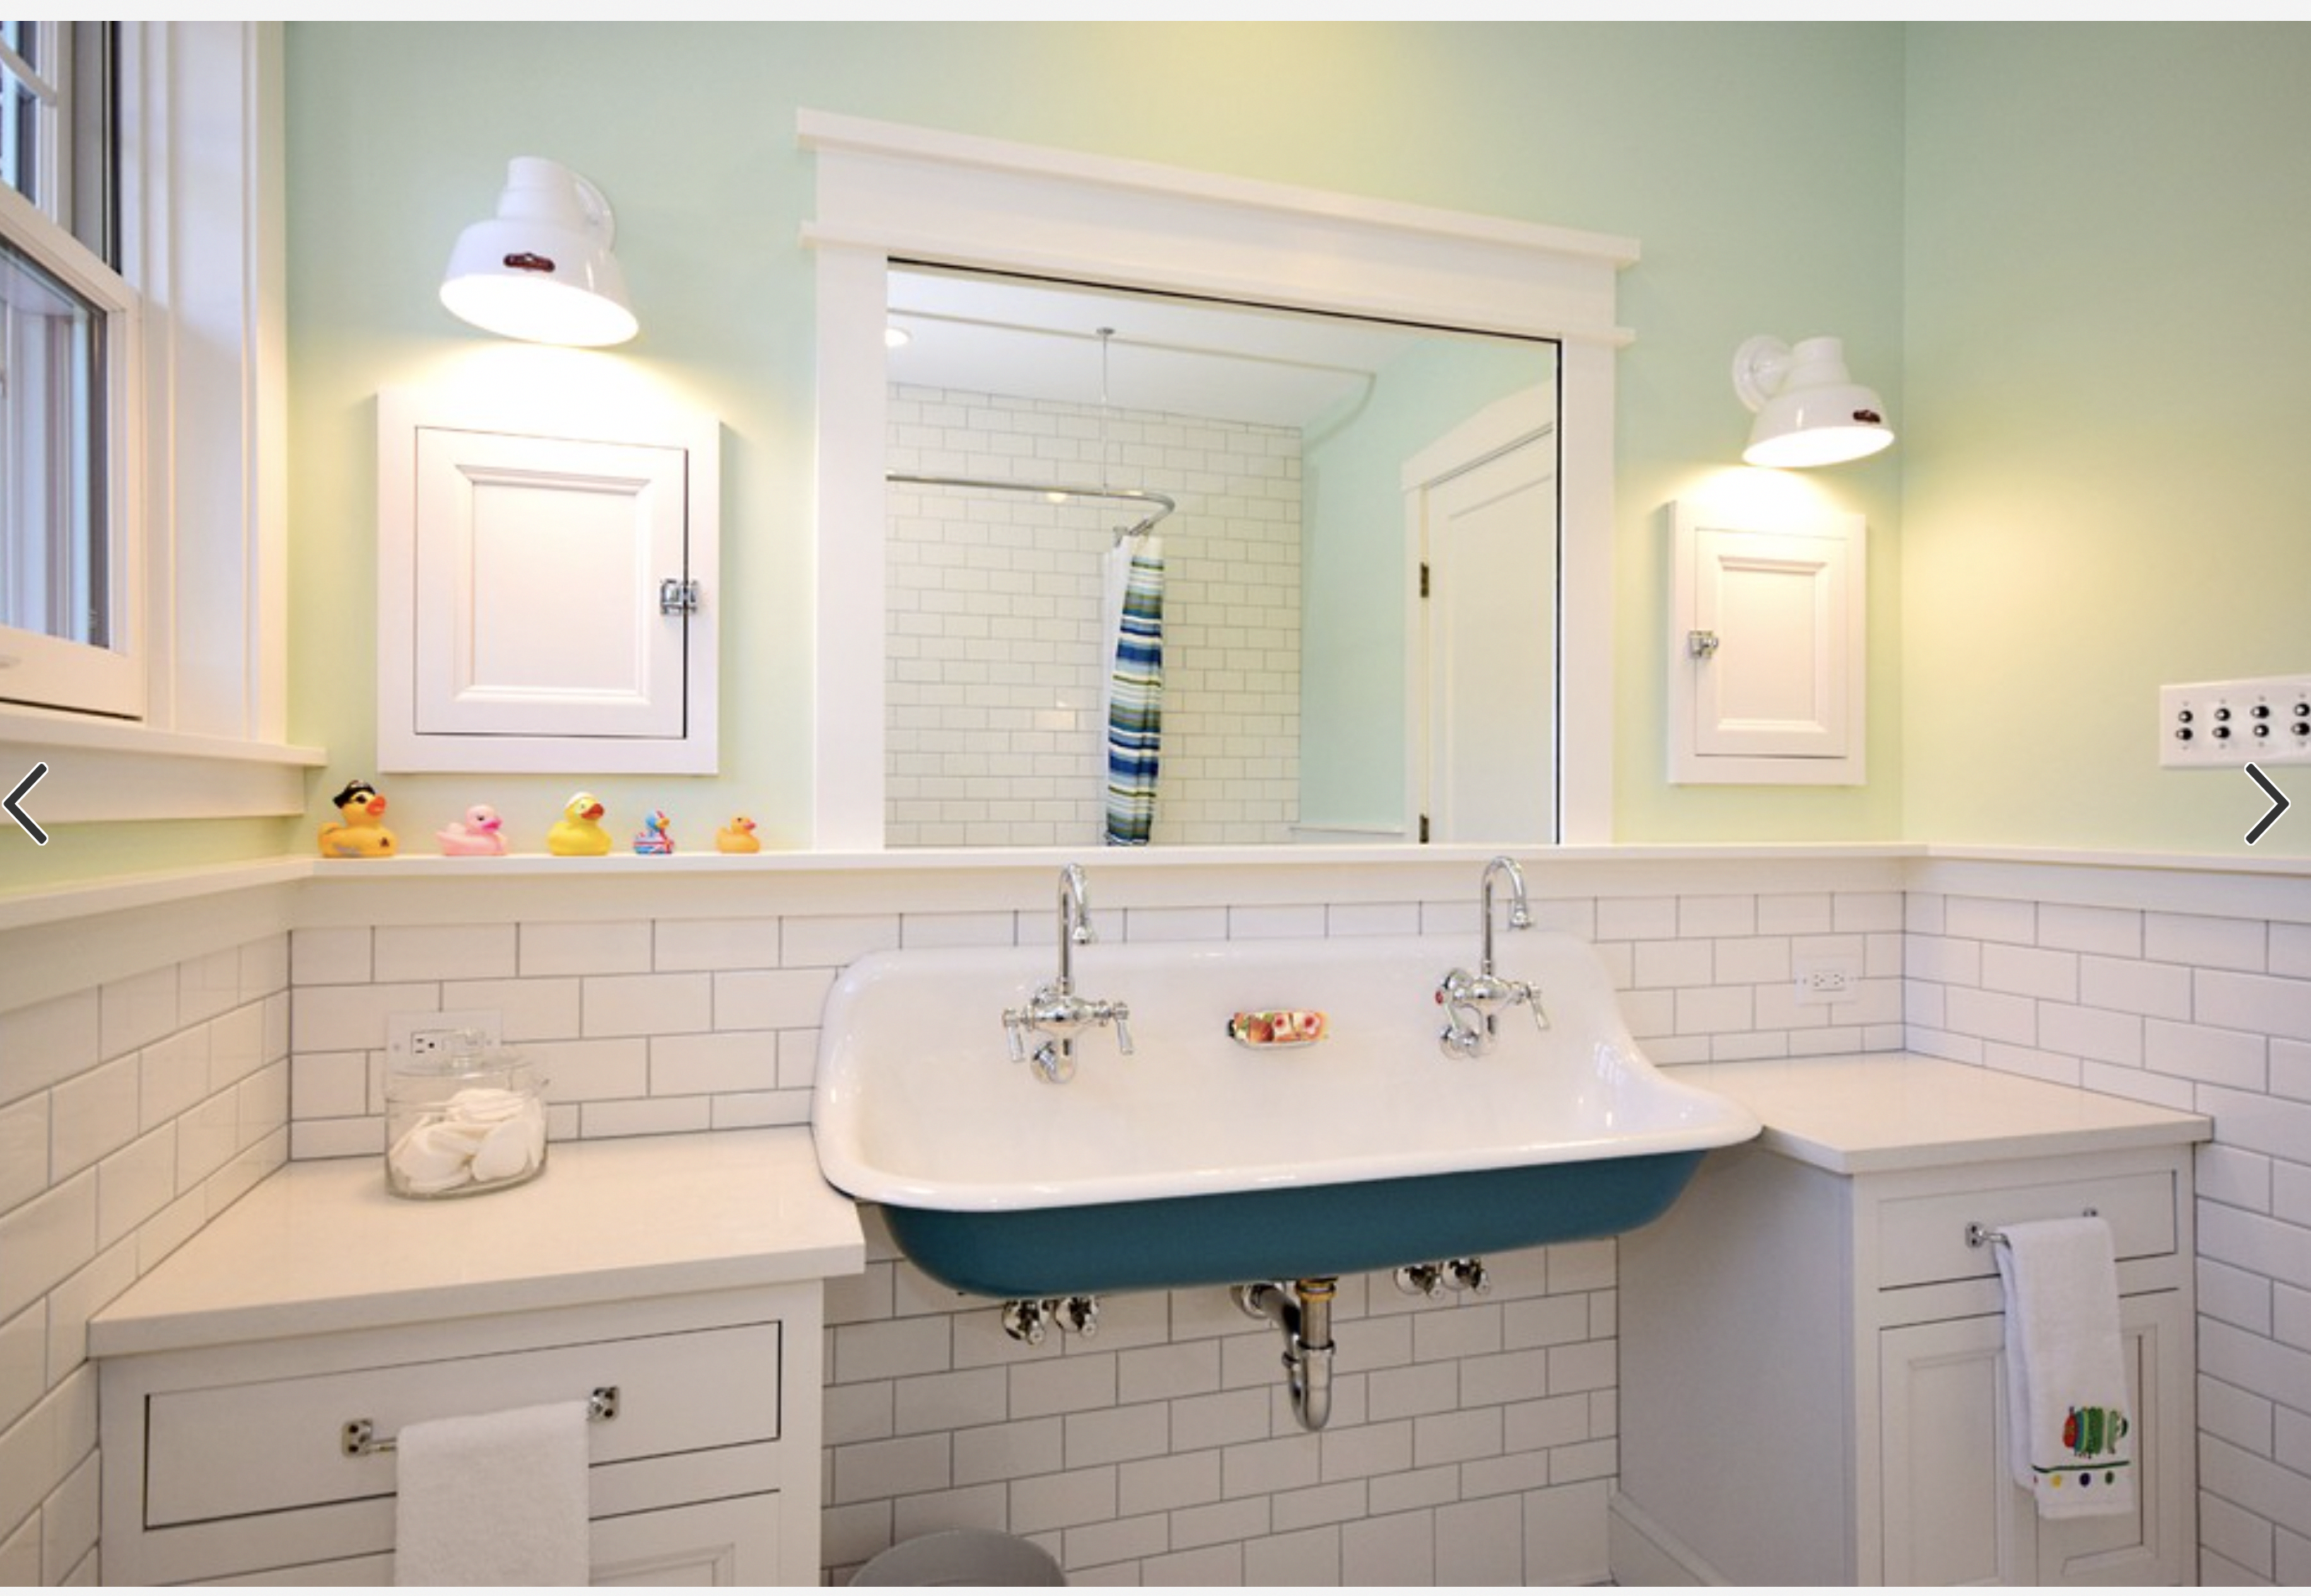 Exactly How I Want To Do The Kiddos Bathroom Sink Can Play And Slop Deep Sink Is Best Ant Traditional Bathroom Bathroom Remodel Cost Bathroom Design Decor